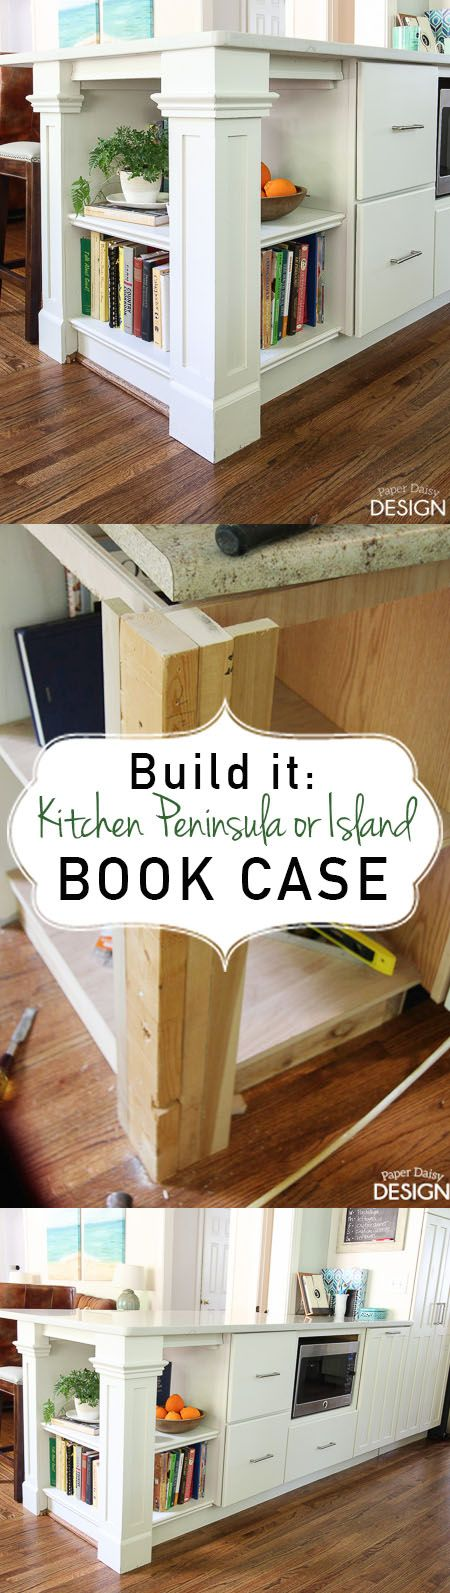 Build it custom kitchen bookcase pinterest kitchen peninsula how to build a kitchen peninsula or island book case or bookshelves create architectural interest and storage in your kitchen solutioingenieria Images